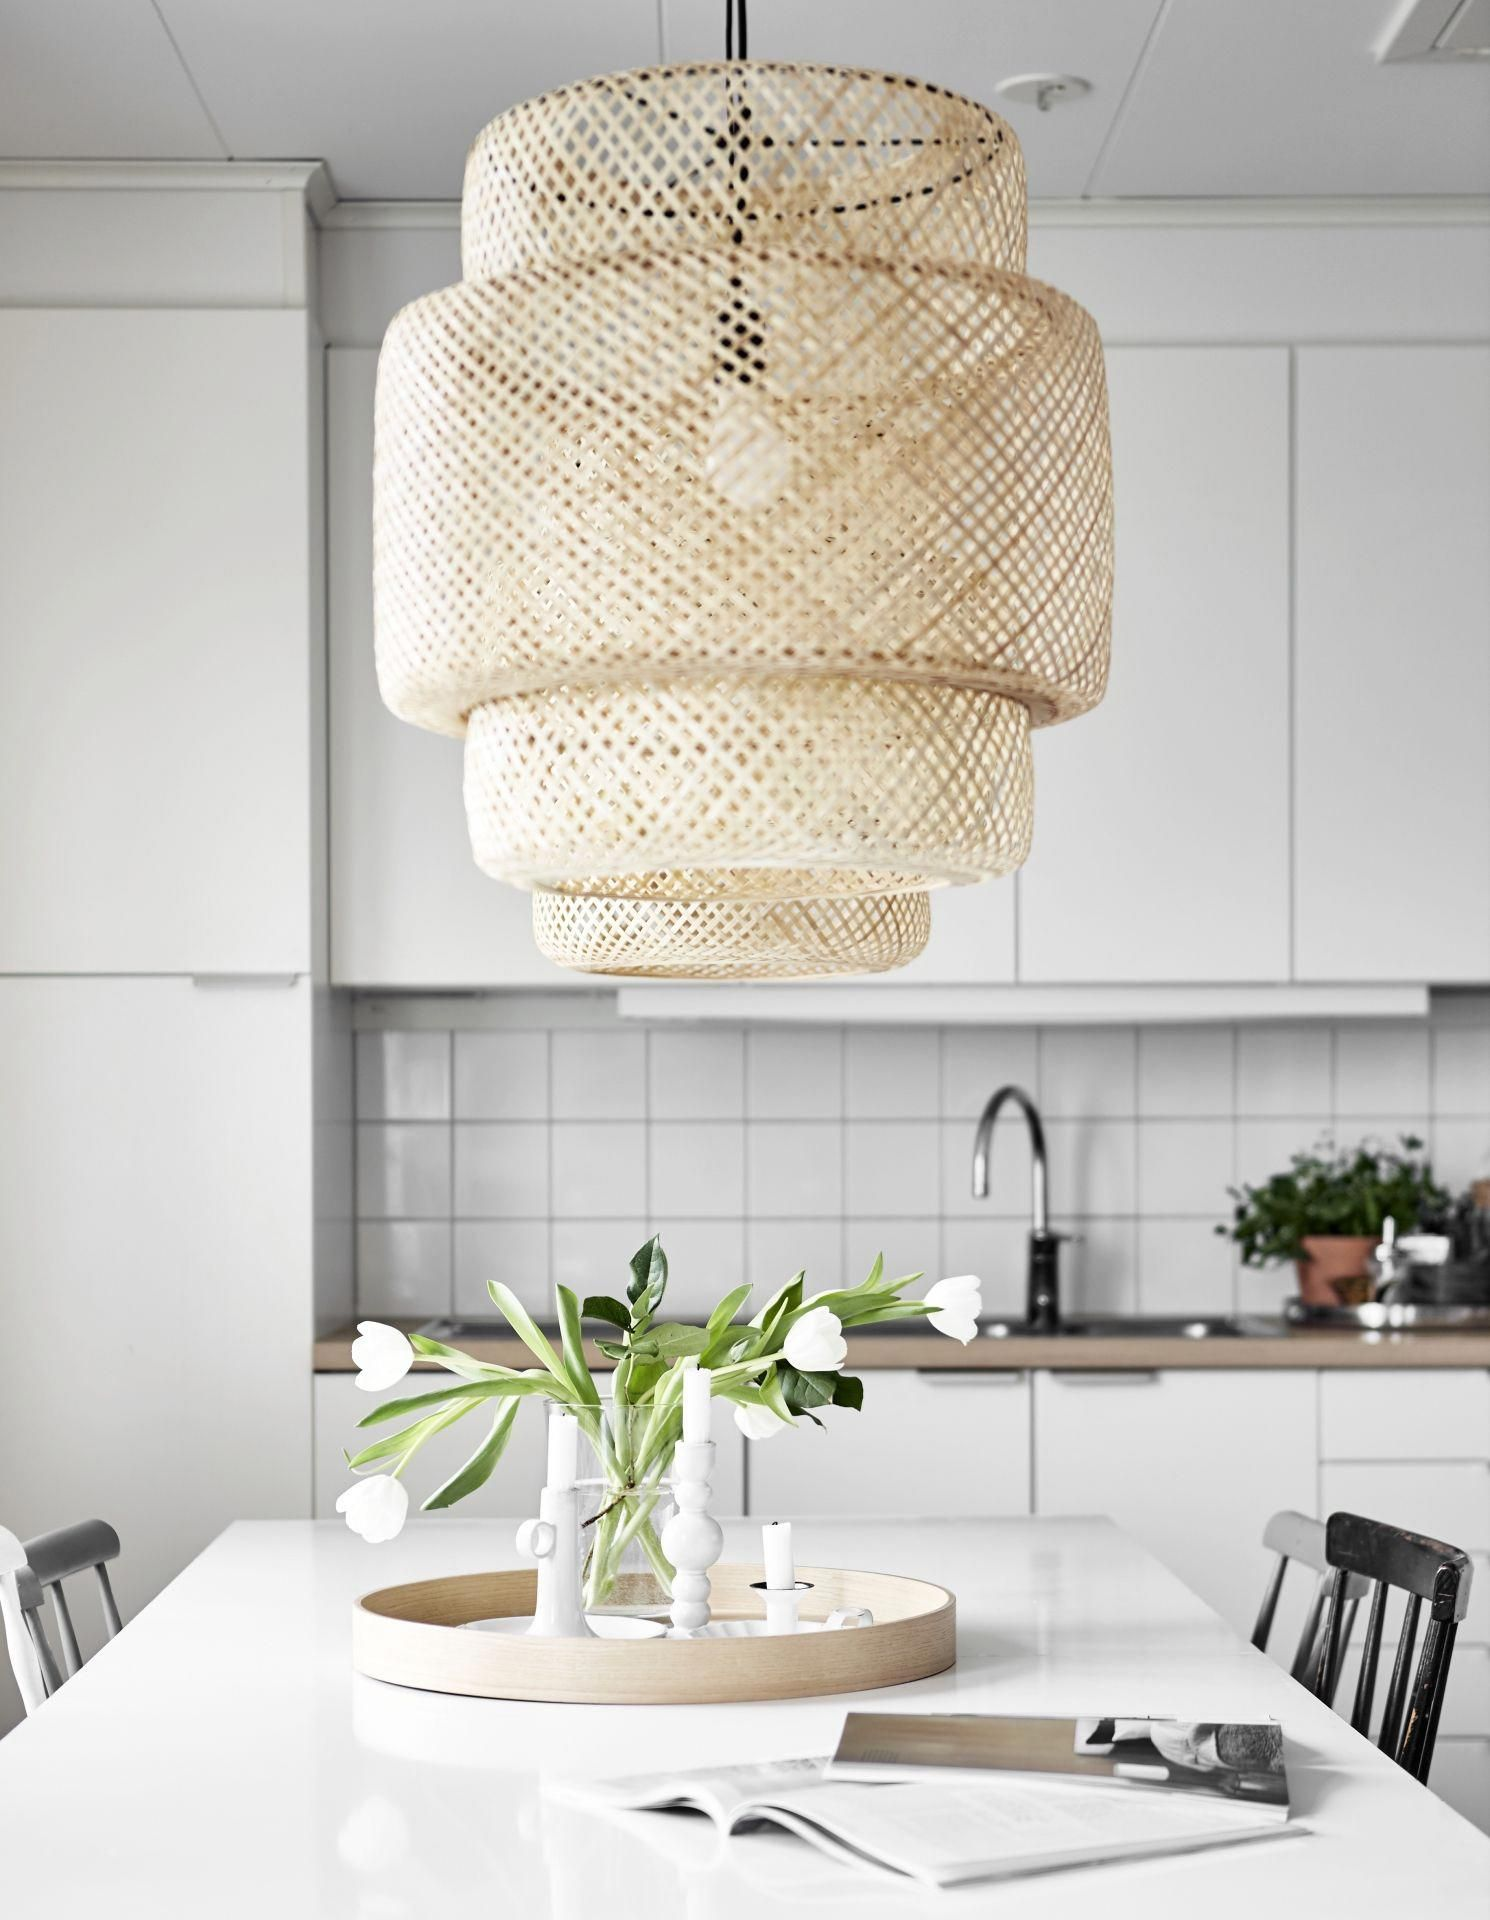 Led Hanglamp Ikea Sinnerlig Hanglamp Bamboe In 2019 Led Lamp Small Bedroom